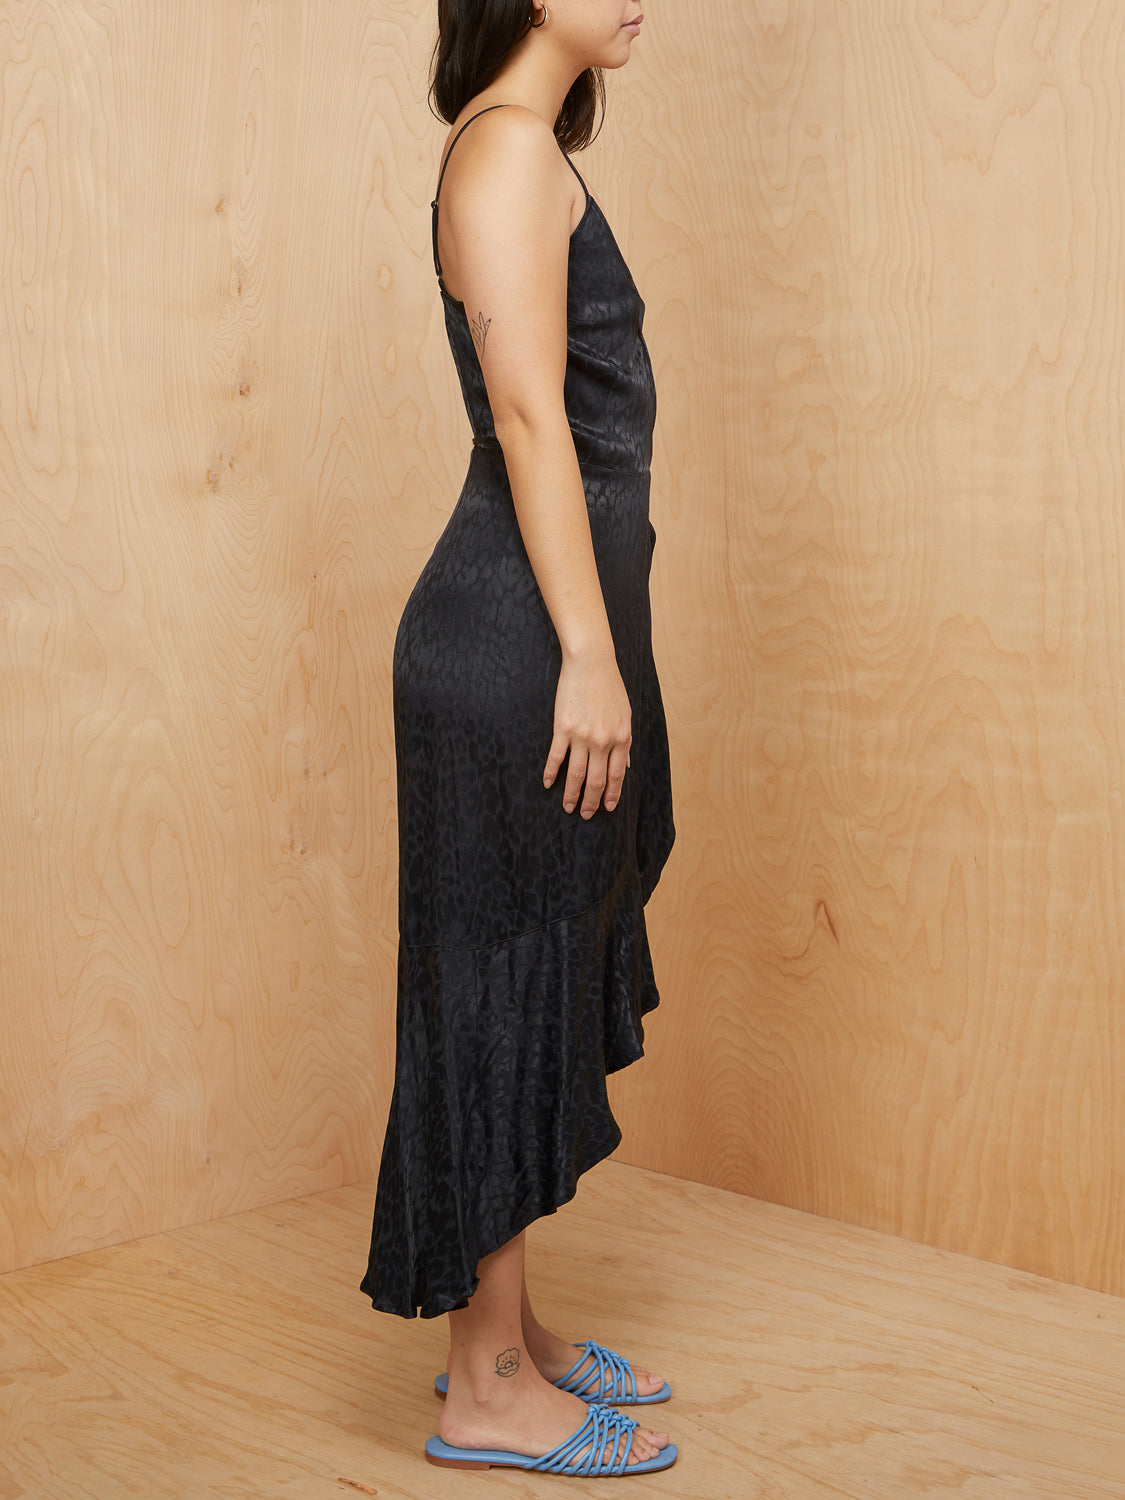 Abercrombie & Fitch Black Wrap Dress